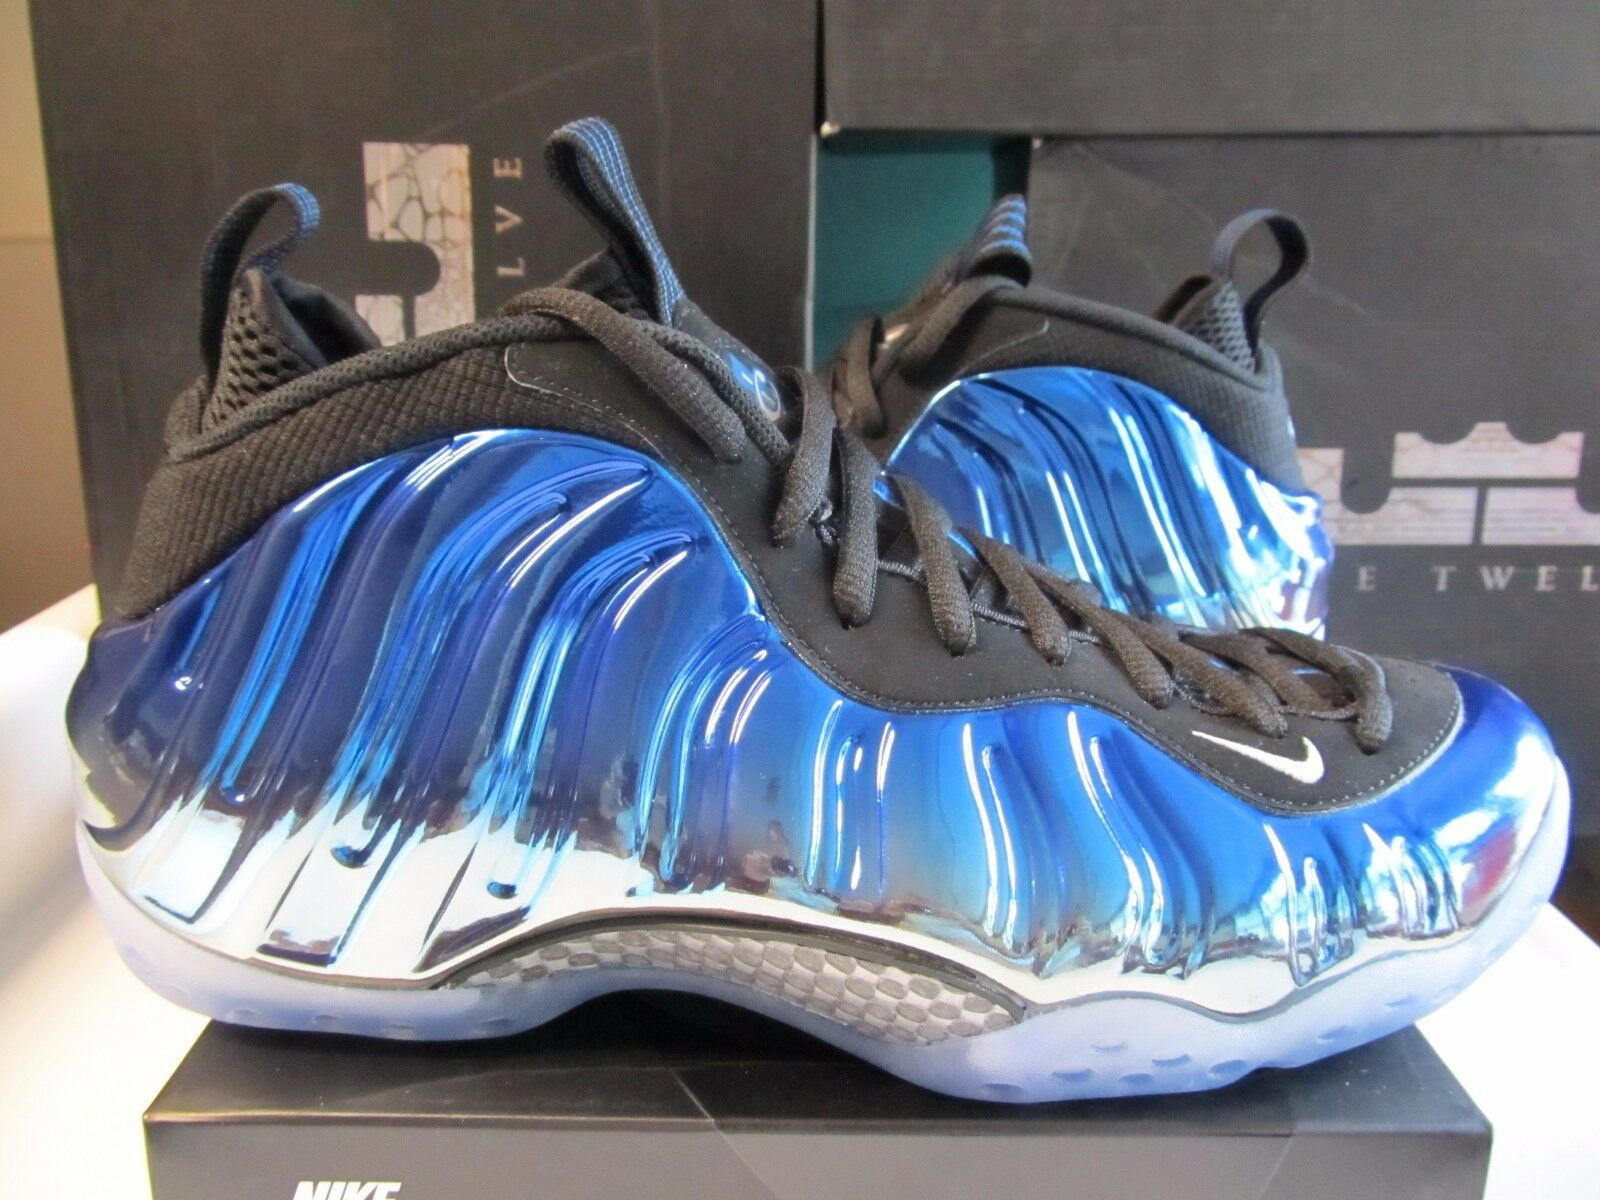 Nike Air Foamposite One PRM blueE MIRROR Metallic Silver Chrome Royal 575420 008